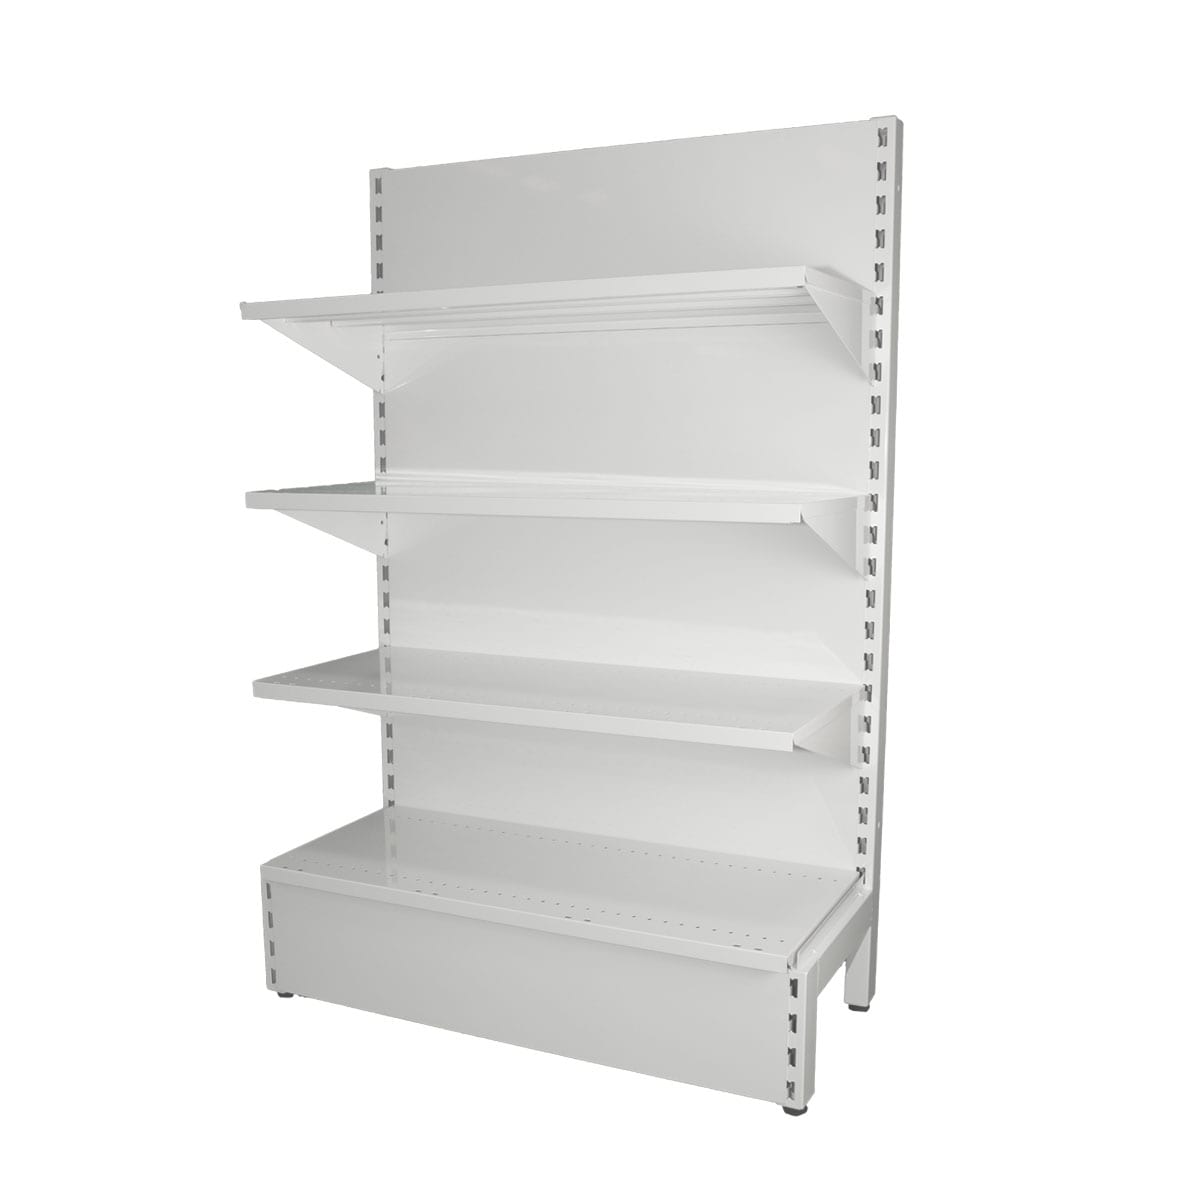 three level white gondola shelving system